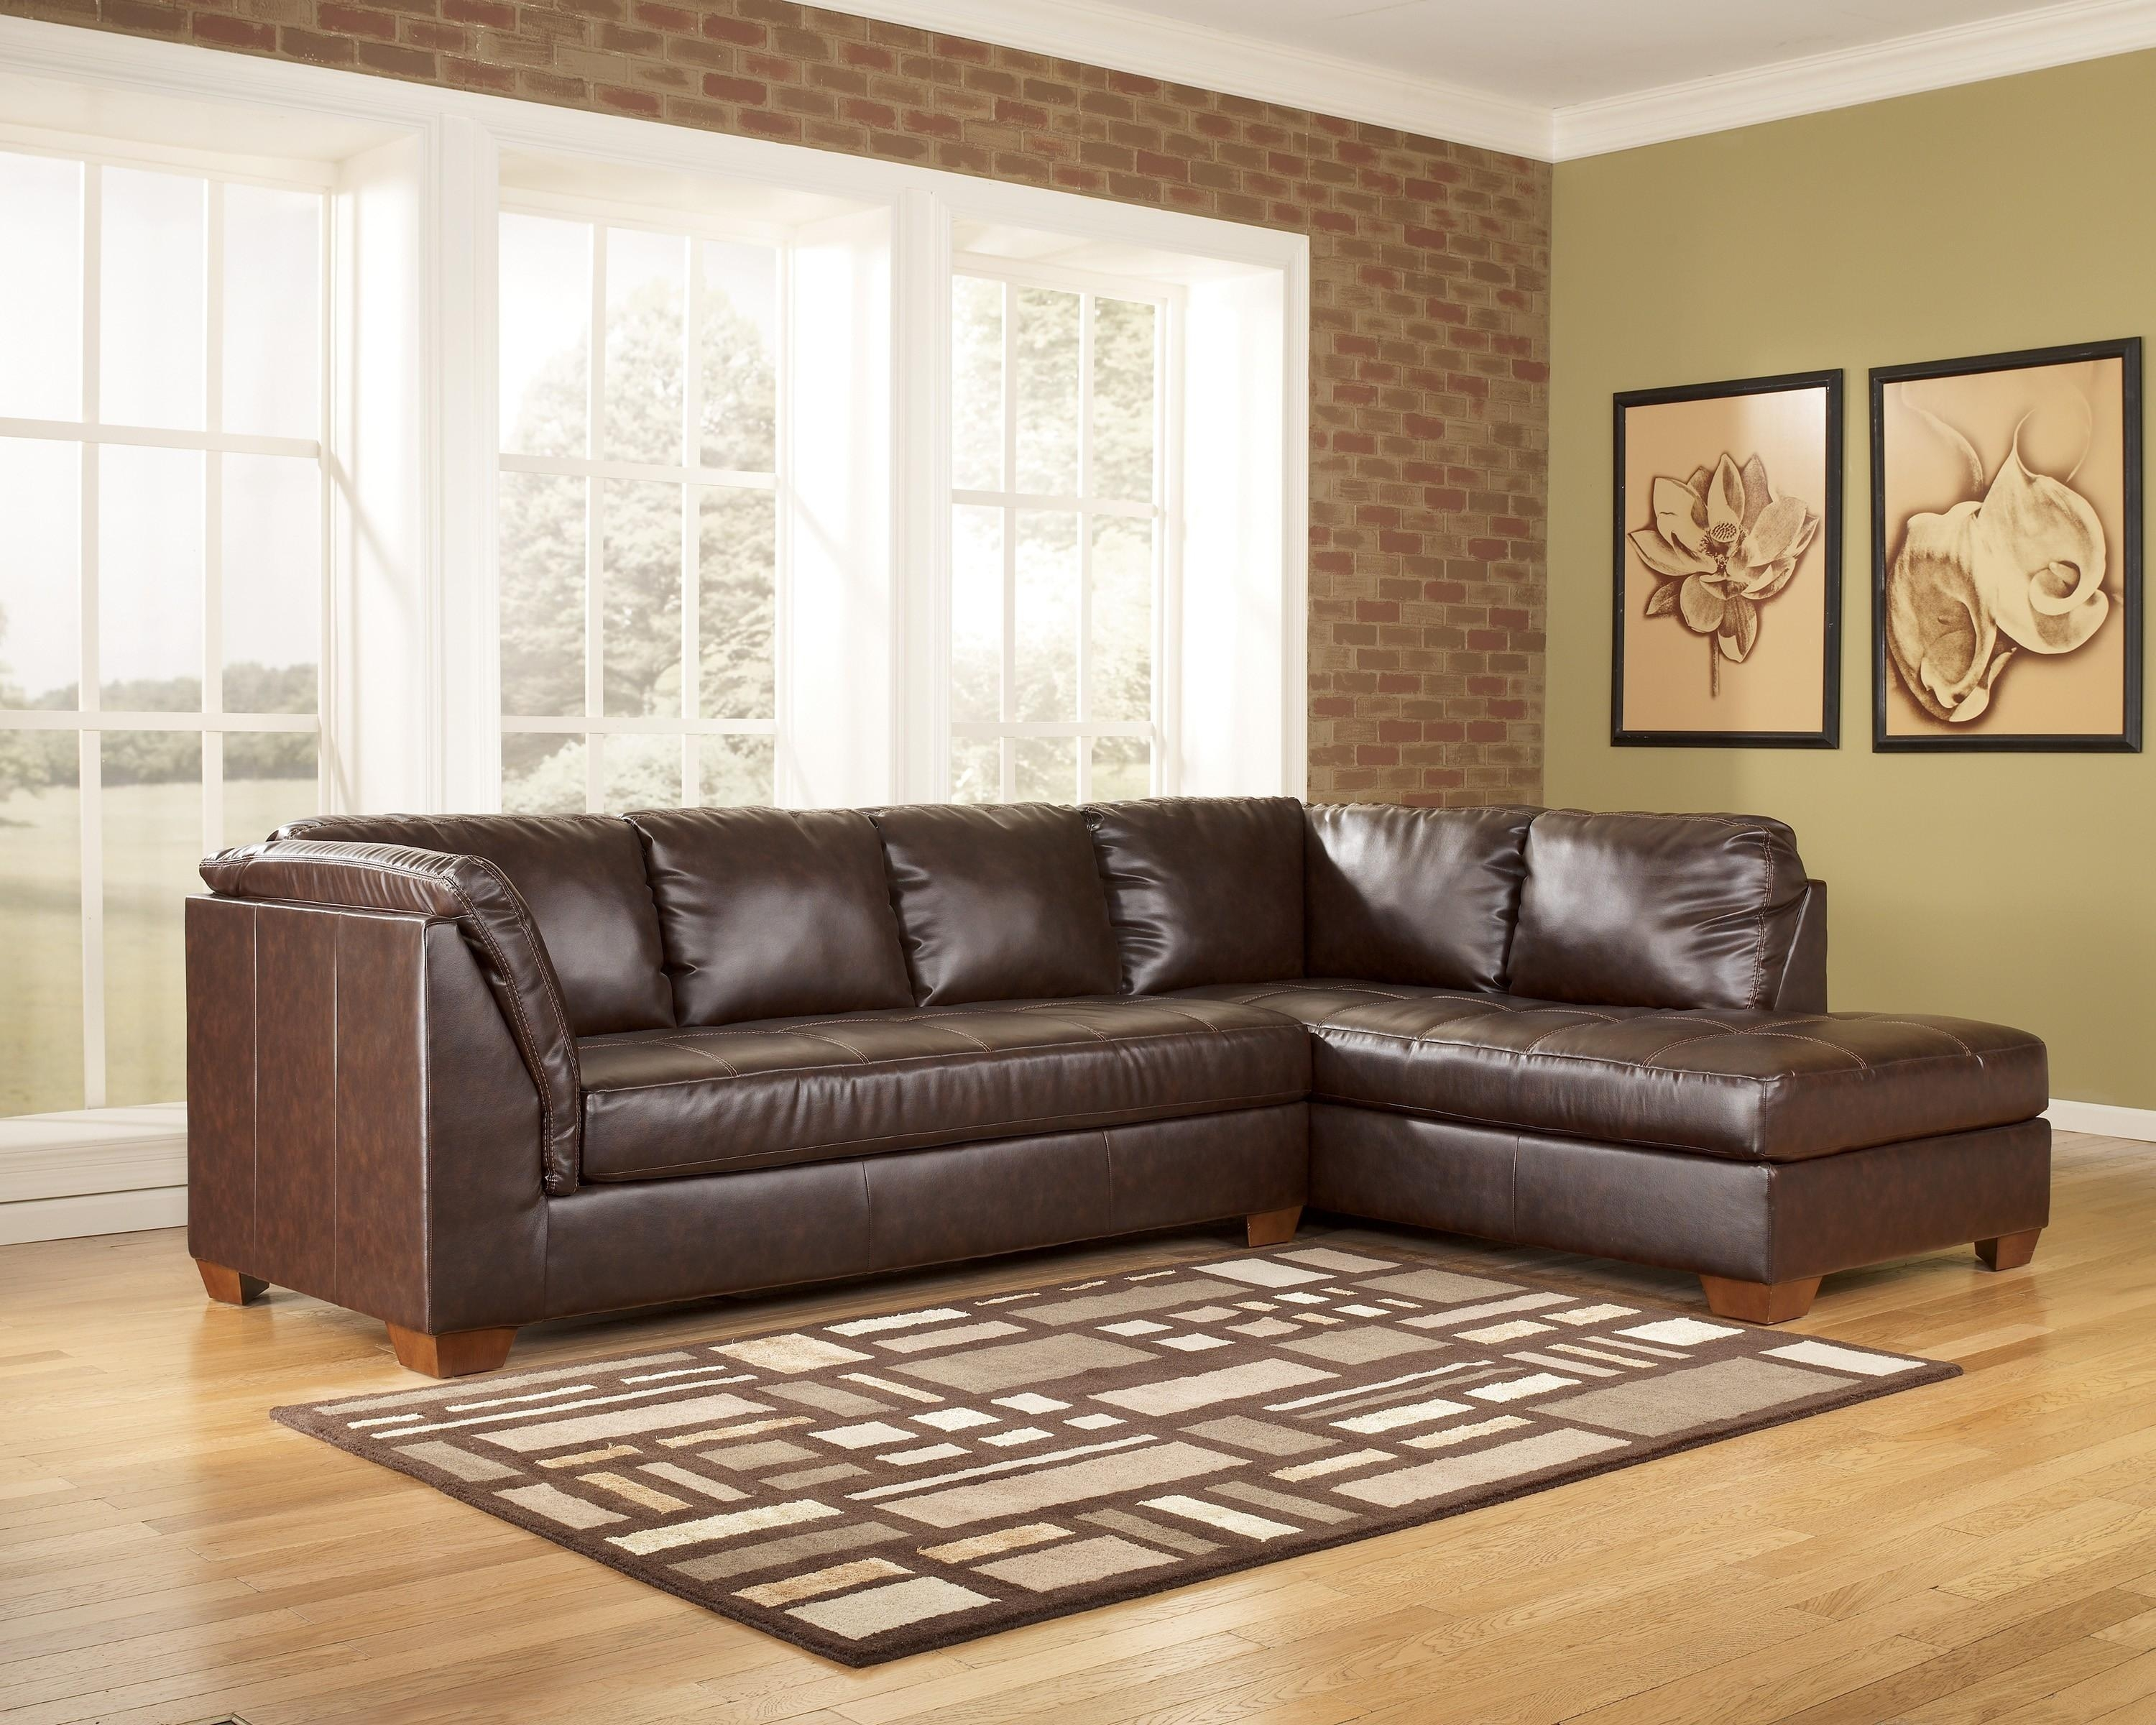 Jcpenney Clearance Sofas | Tehranmix Decoration pertaining to Western Style Sectional Sofas